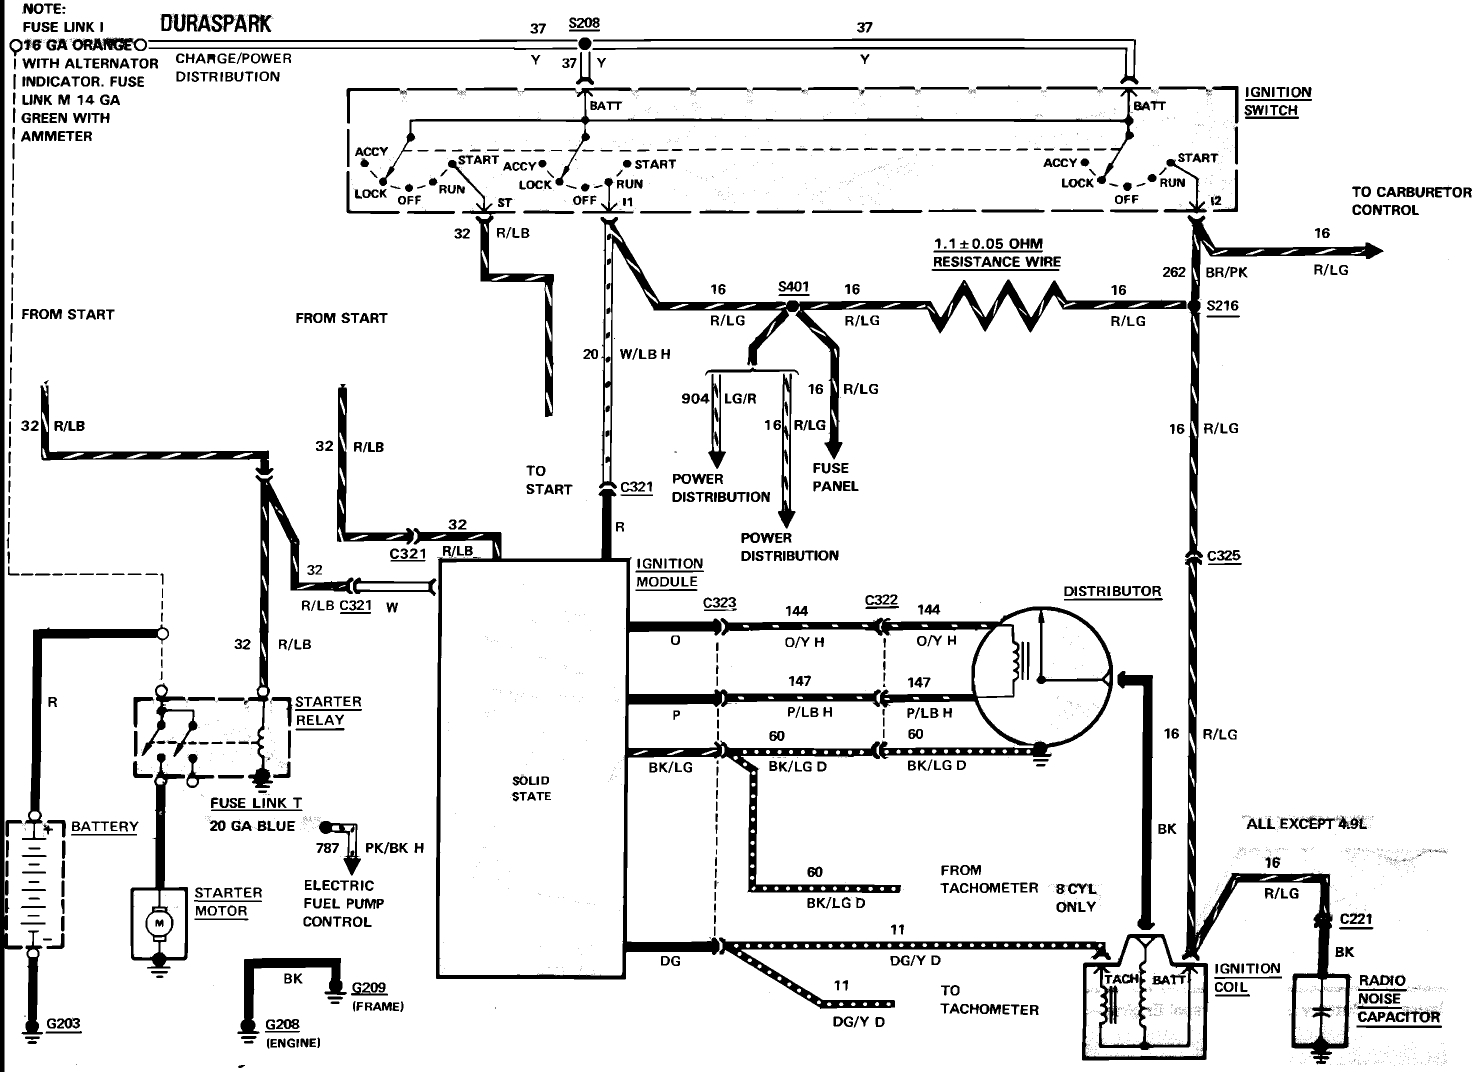 1998 ford f250 starter wiring diagram 1989 ford f150 ignition wiring diagram | free wiring diagram 1998 ford explorer starter wiring diagram